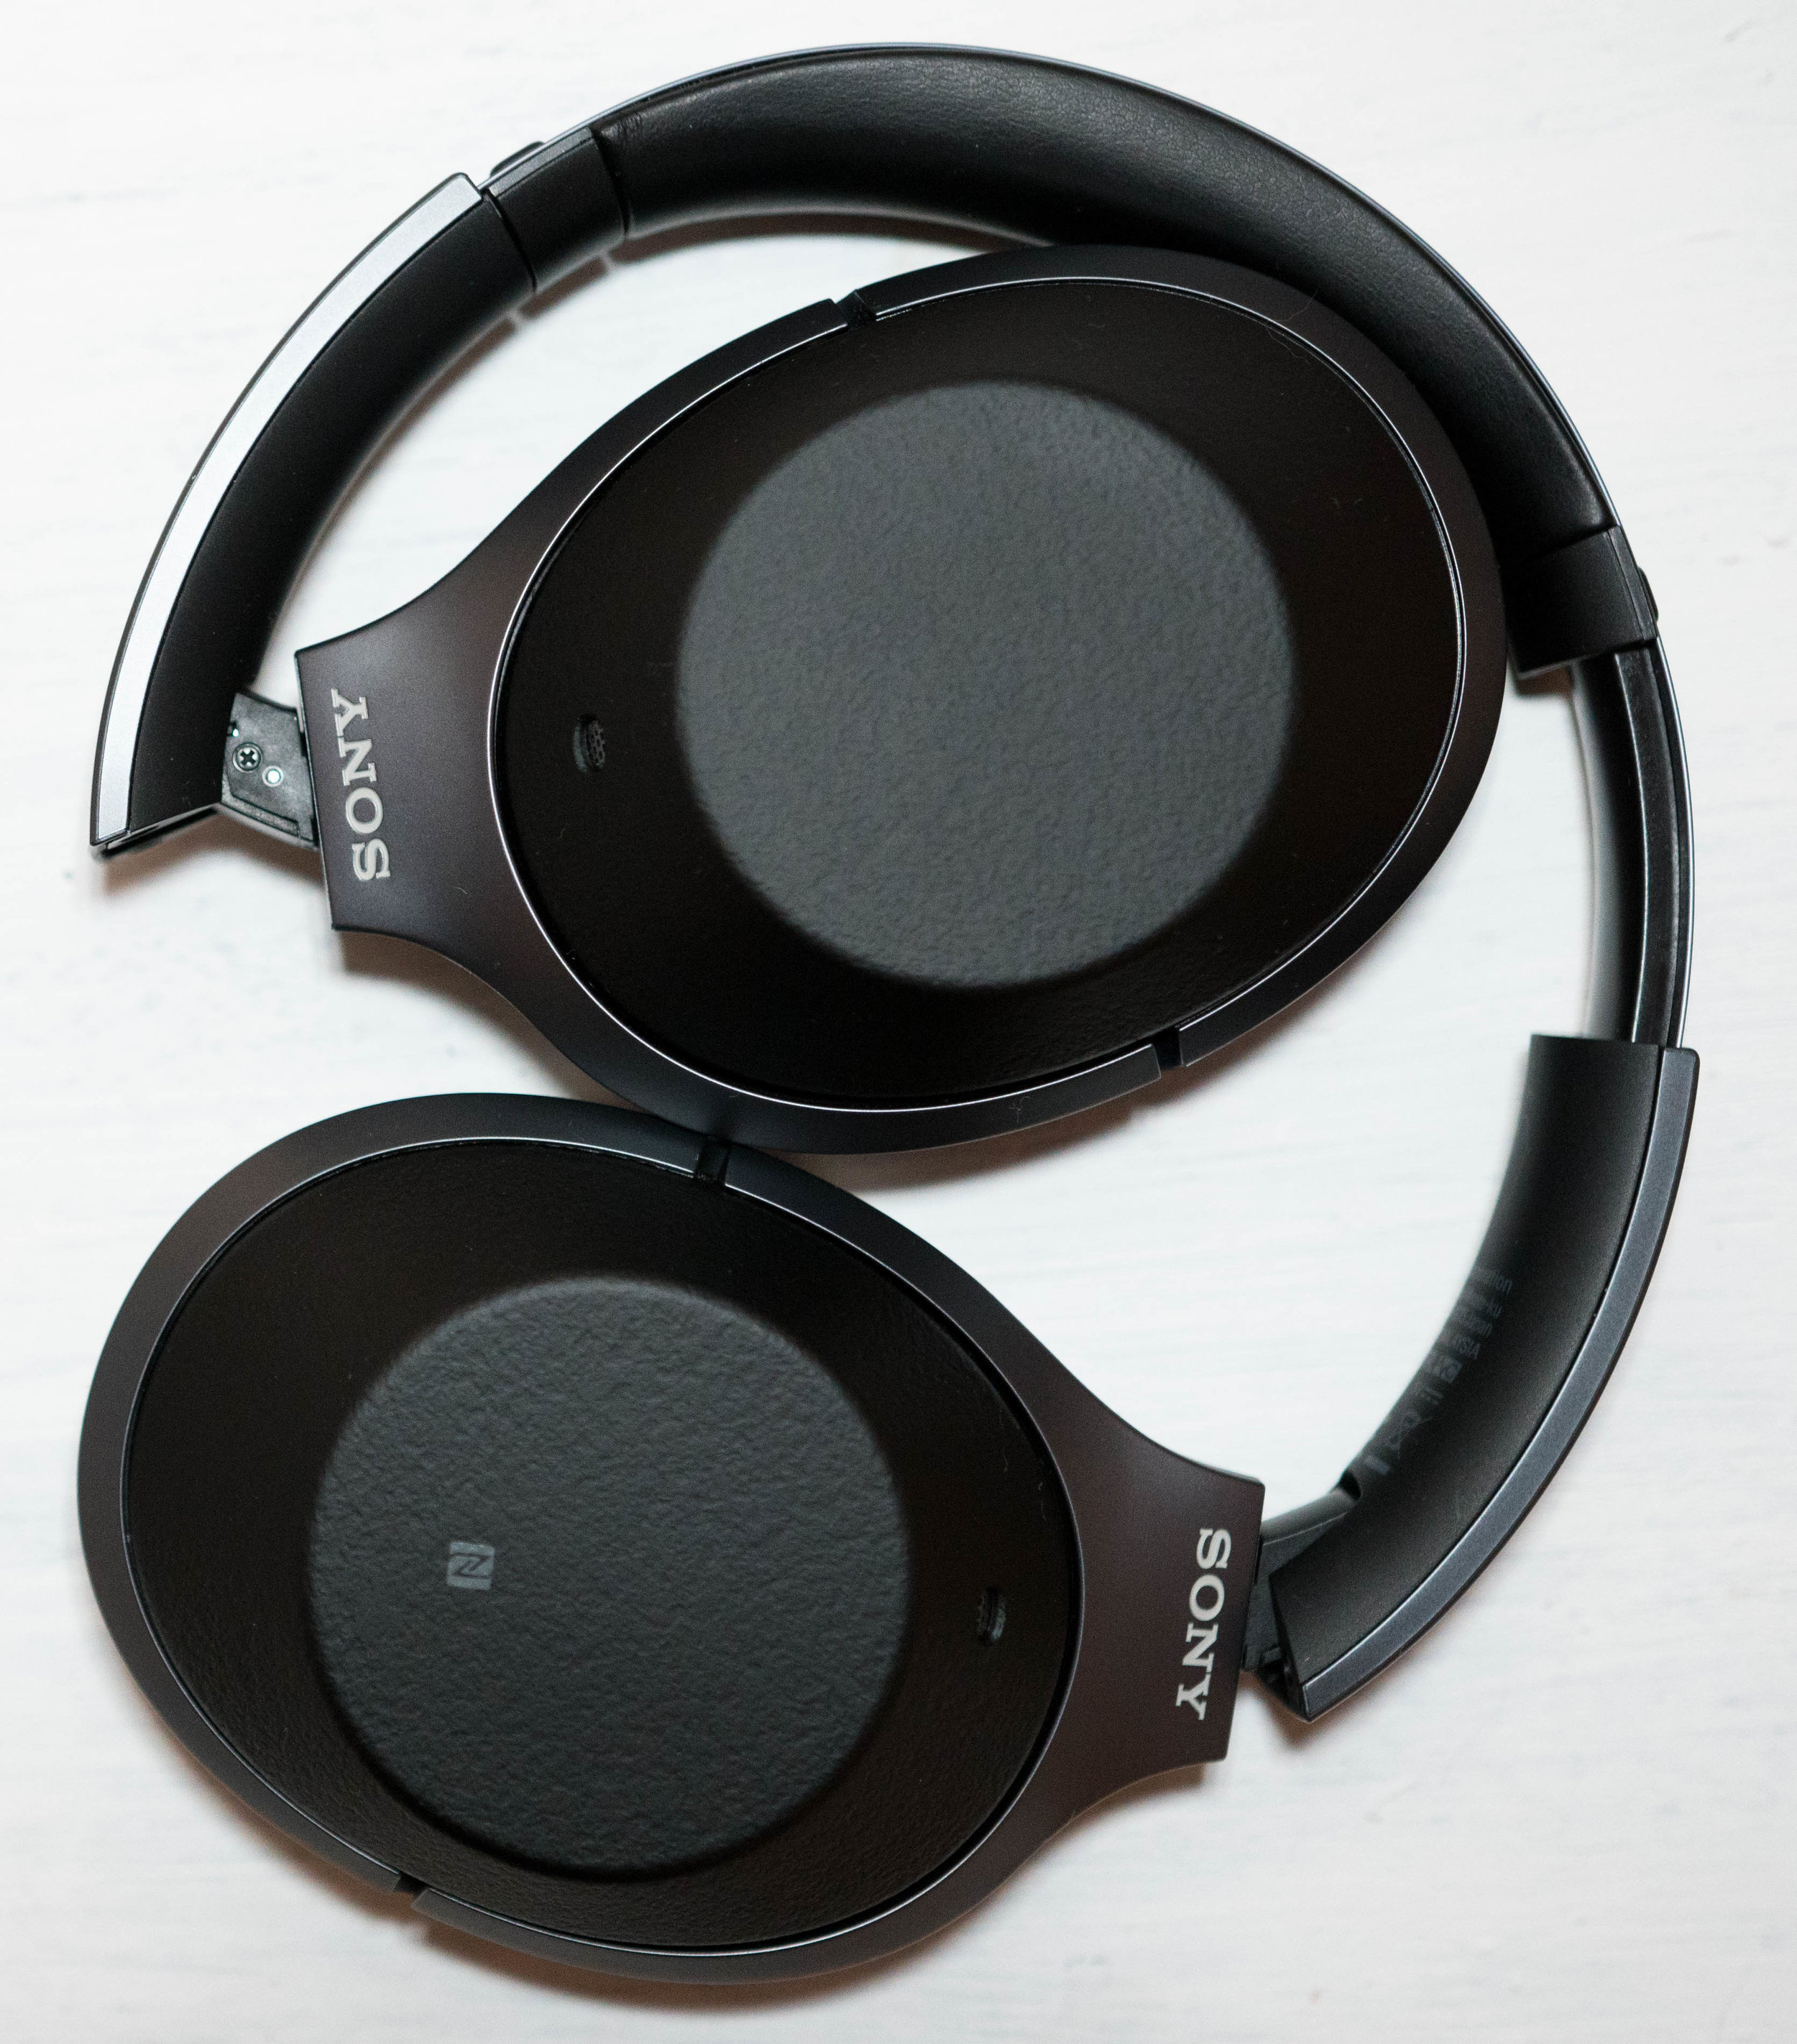 Sony WH-1000XM2 the best noise cancelling wireless headphones in the world.